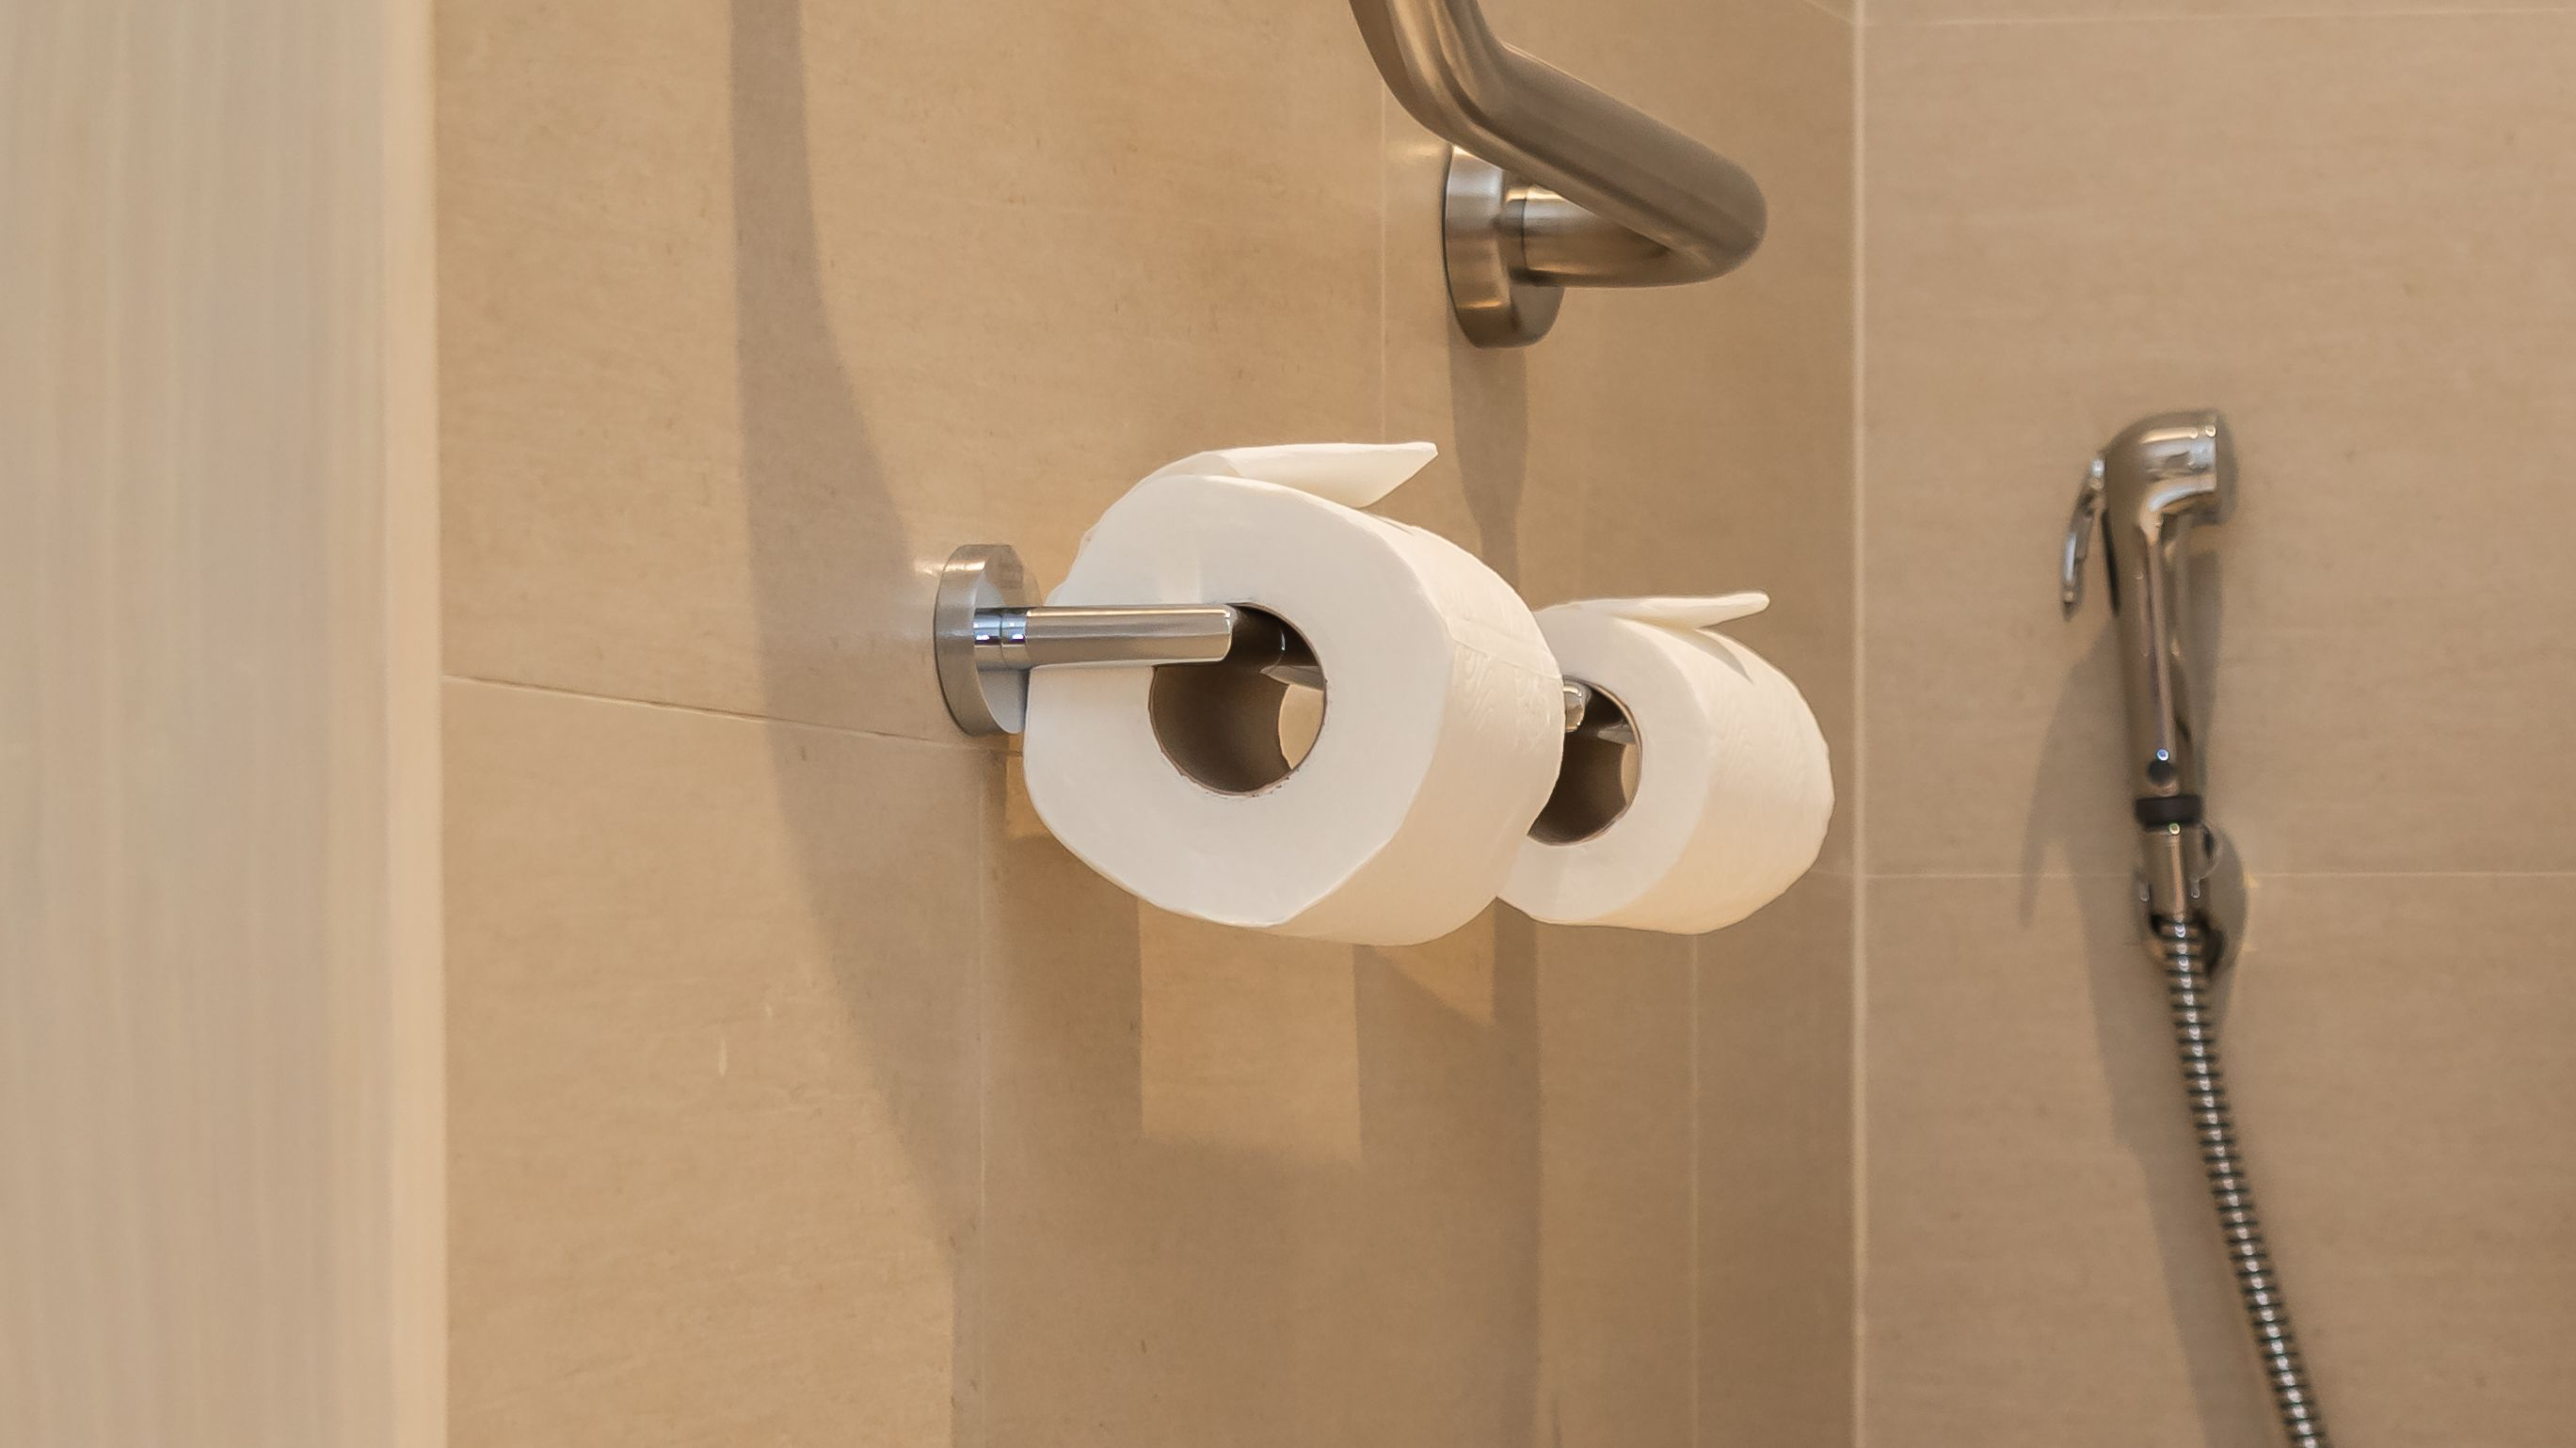 Toilet roll holder buying guide